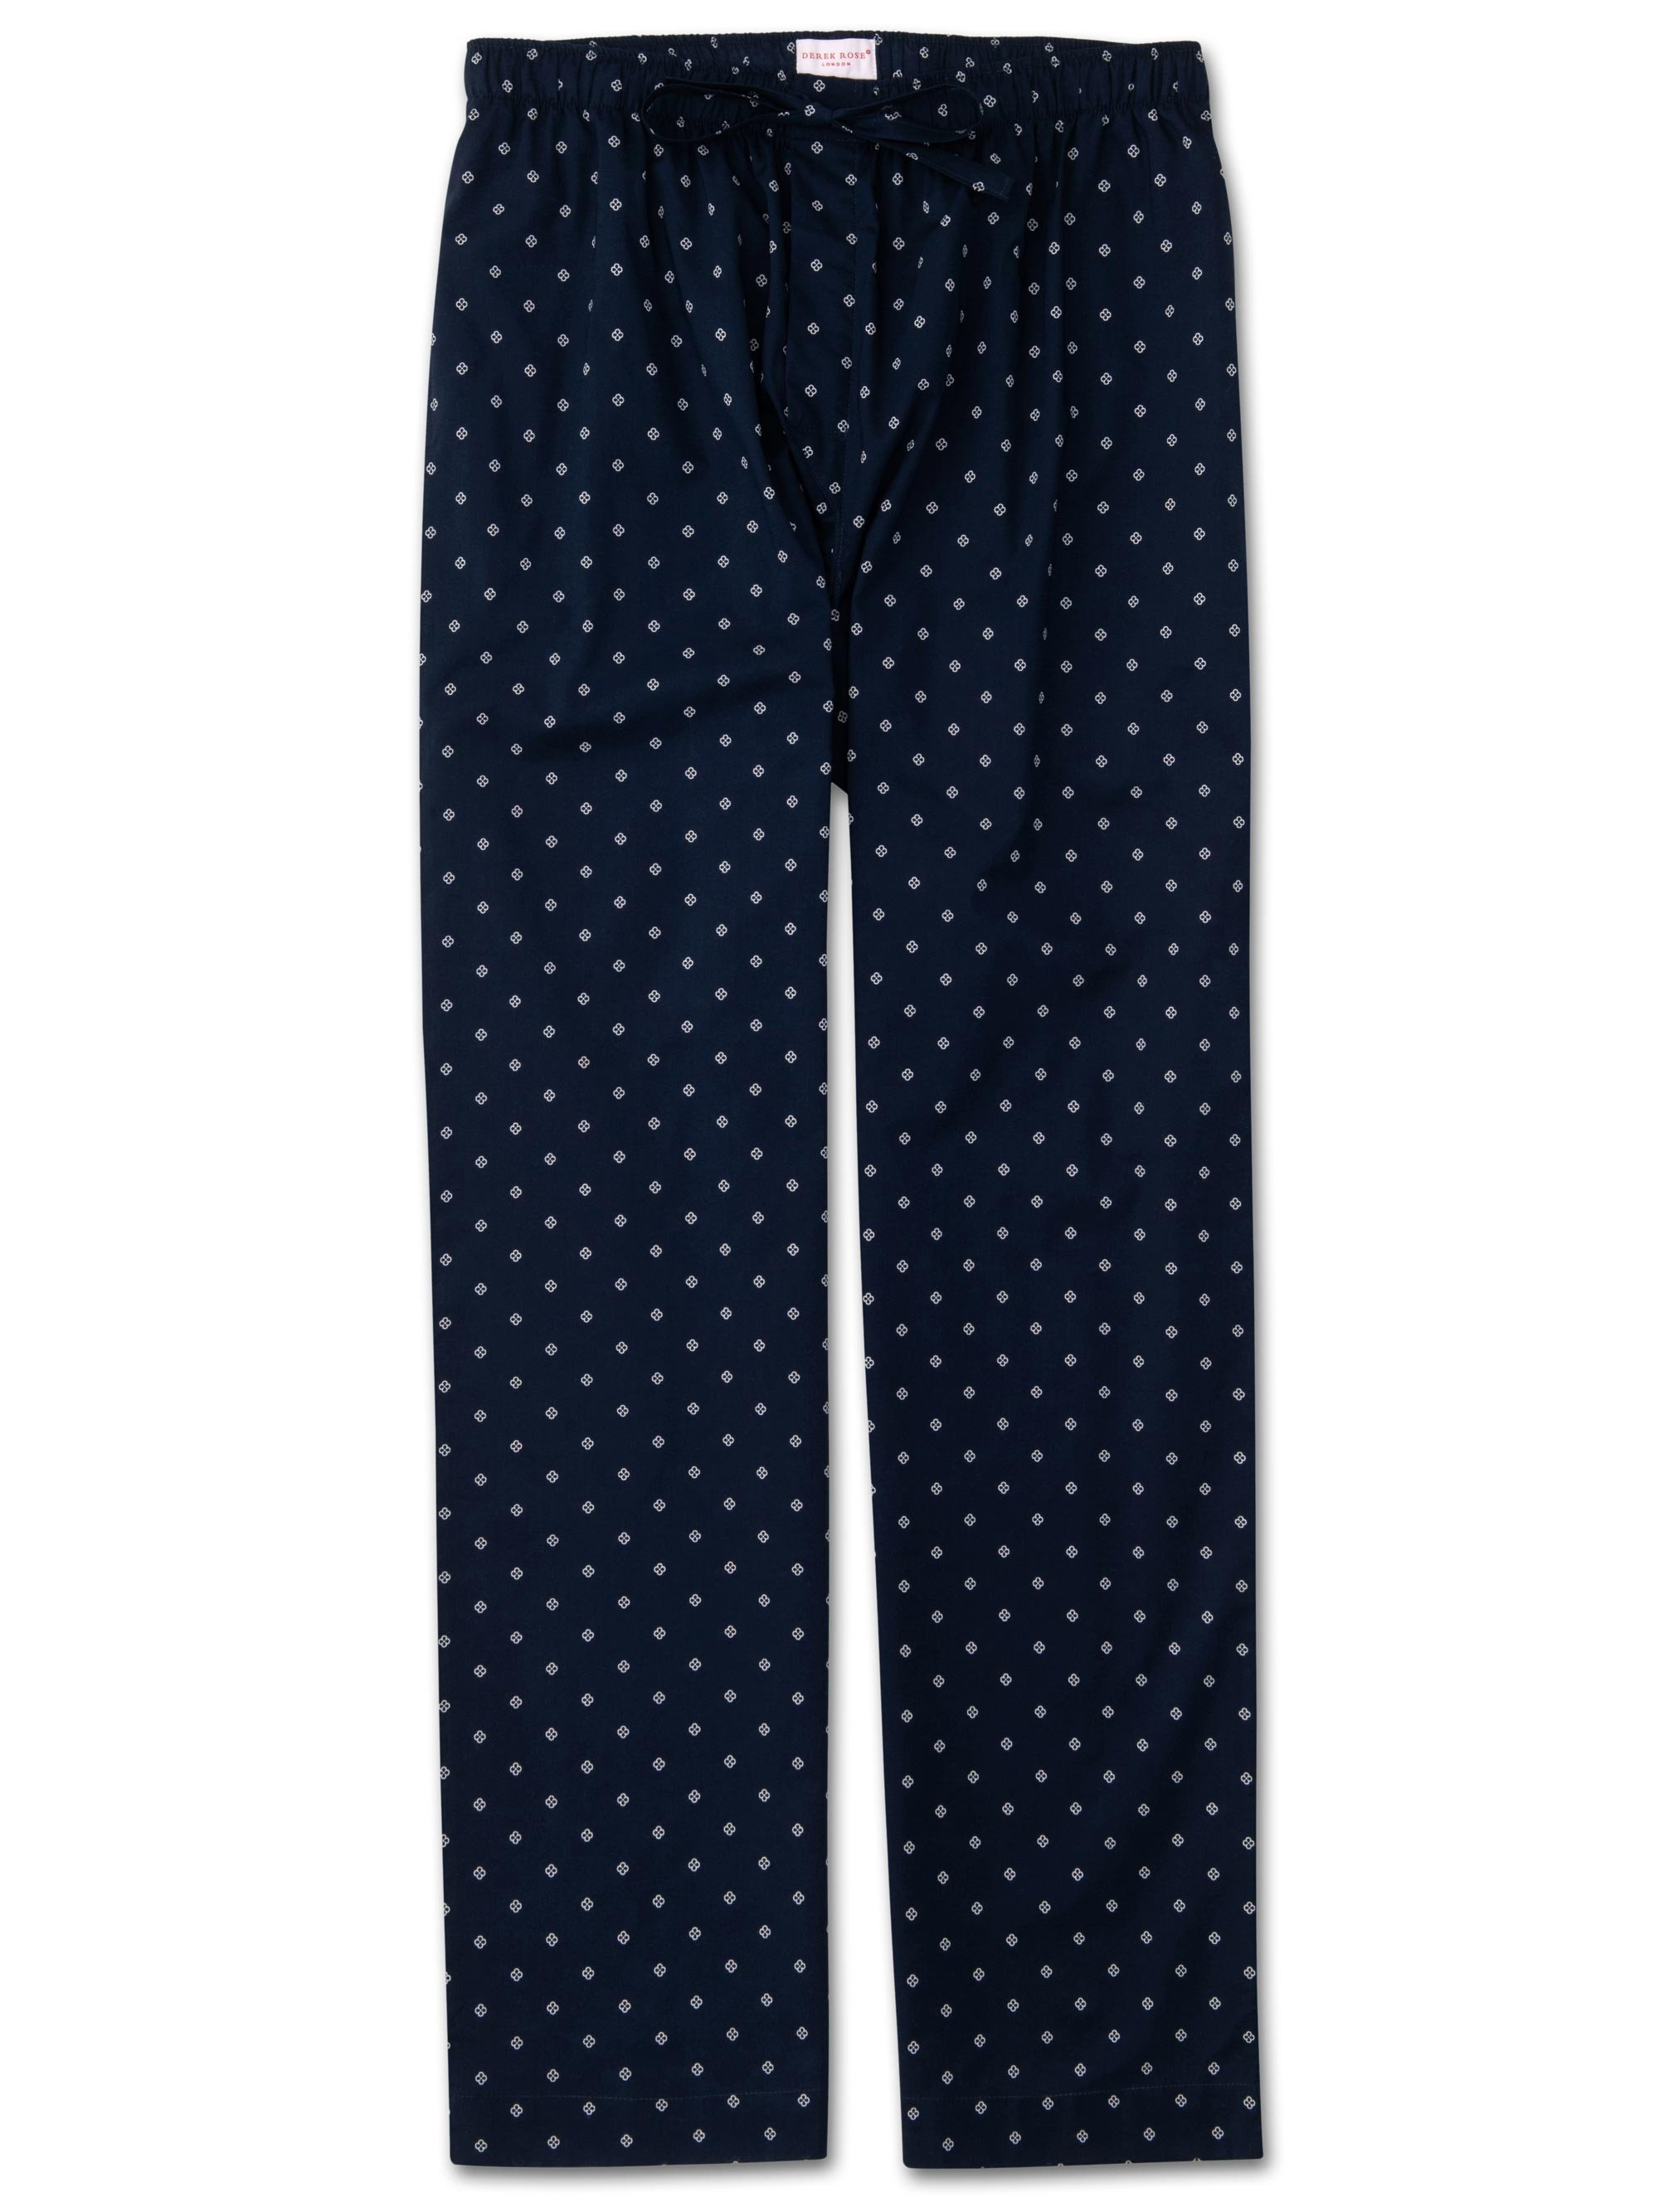 Men's Lounge Trousers Nelson 71 Cotton Batiste Navy